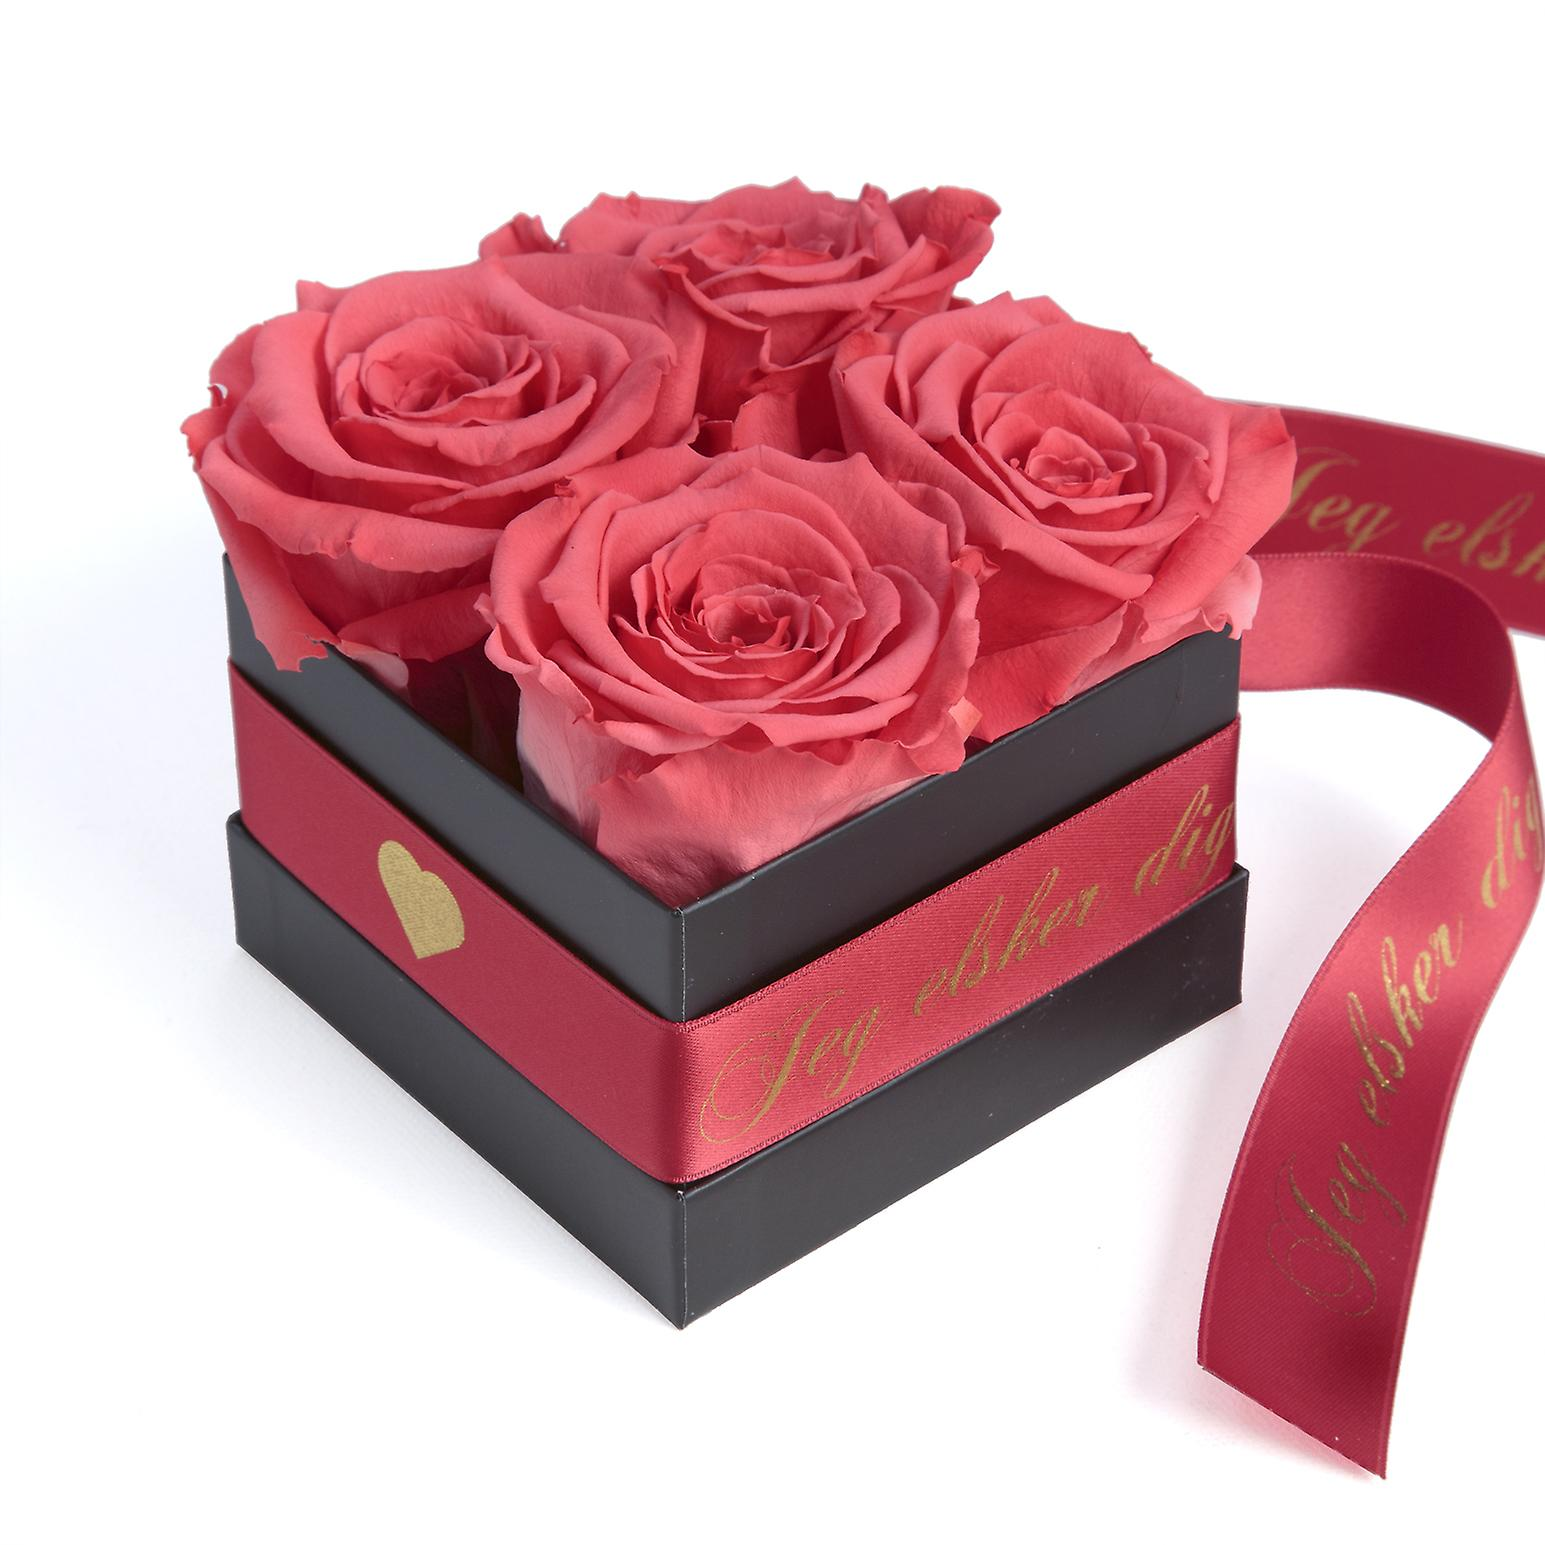 JEG elsker dig Flowerbox with 4 preserved roses pink and satin ribbon shelf life 3 years